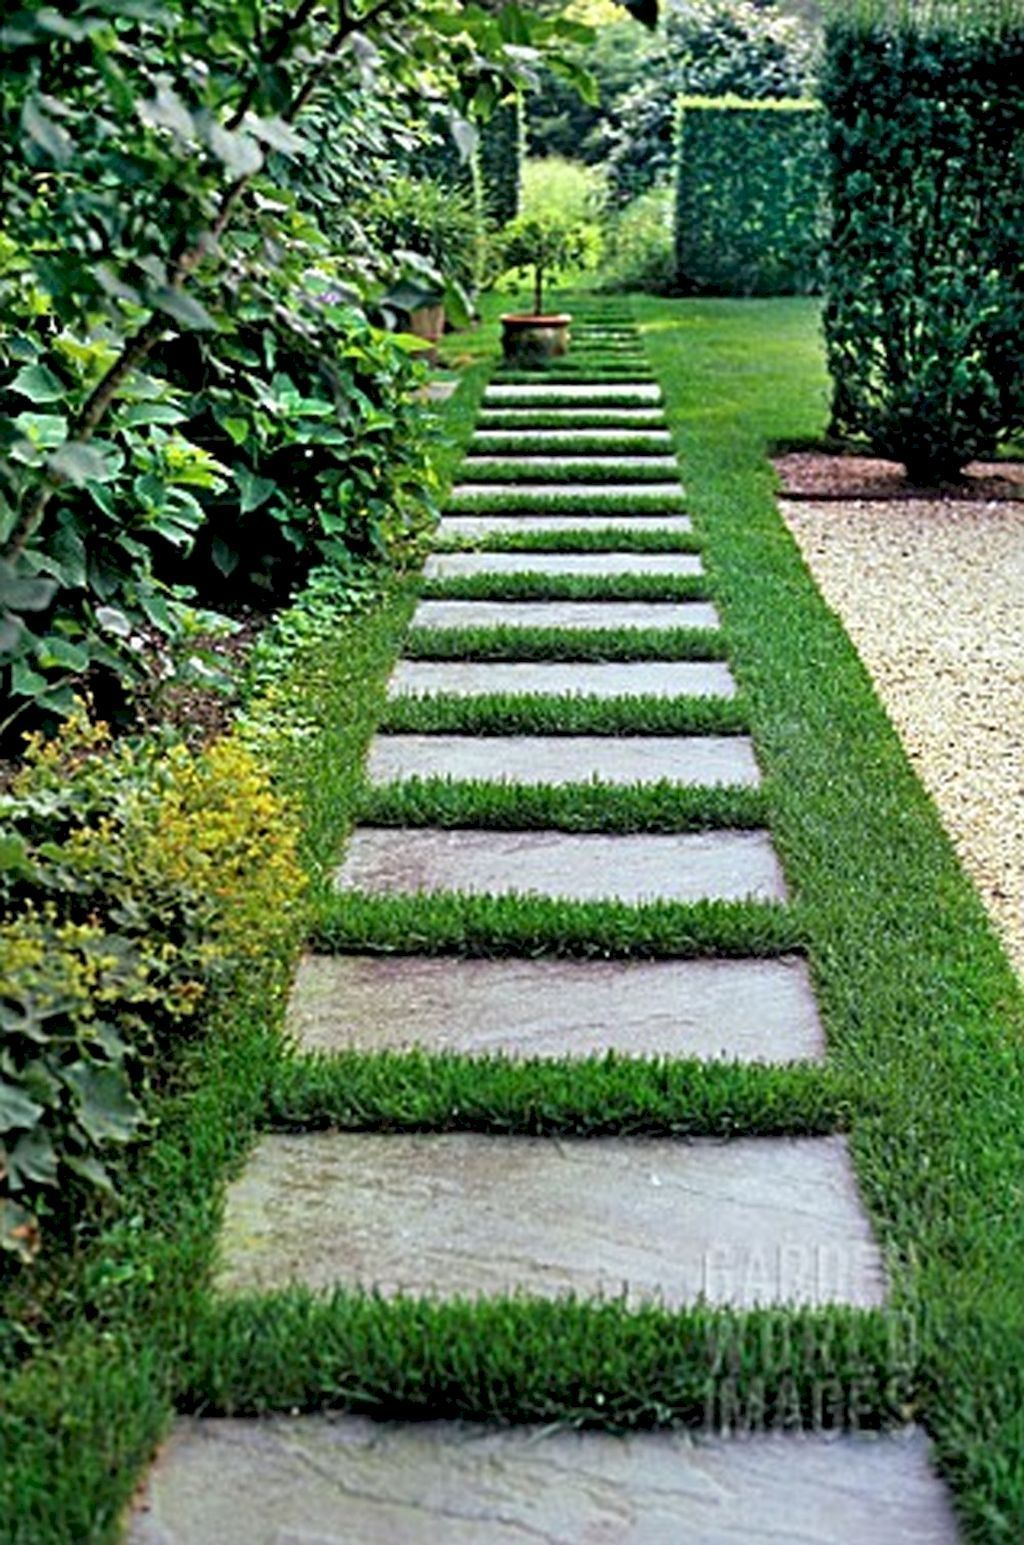 Landscaping Ideas For The Front Yard Better Homes And Gardens Onbudget Landscaping Lowmai Front Yard Garden Design Pathway Landscaping Walkway Landscaping